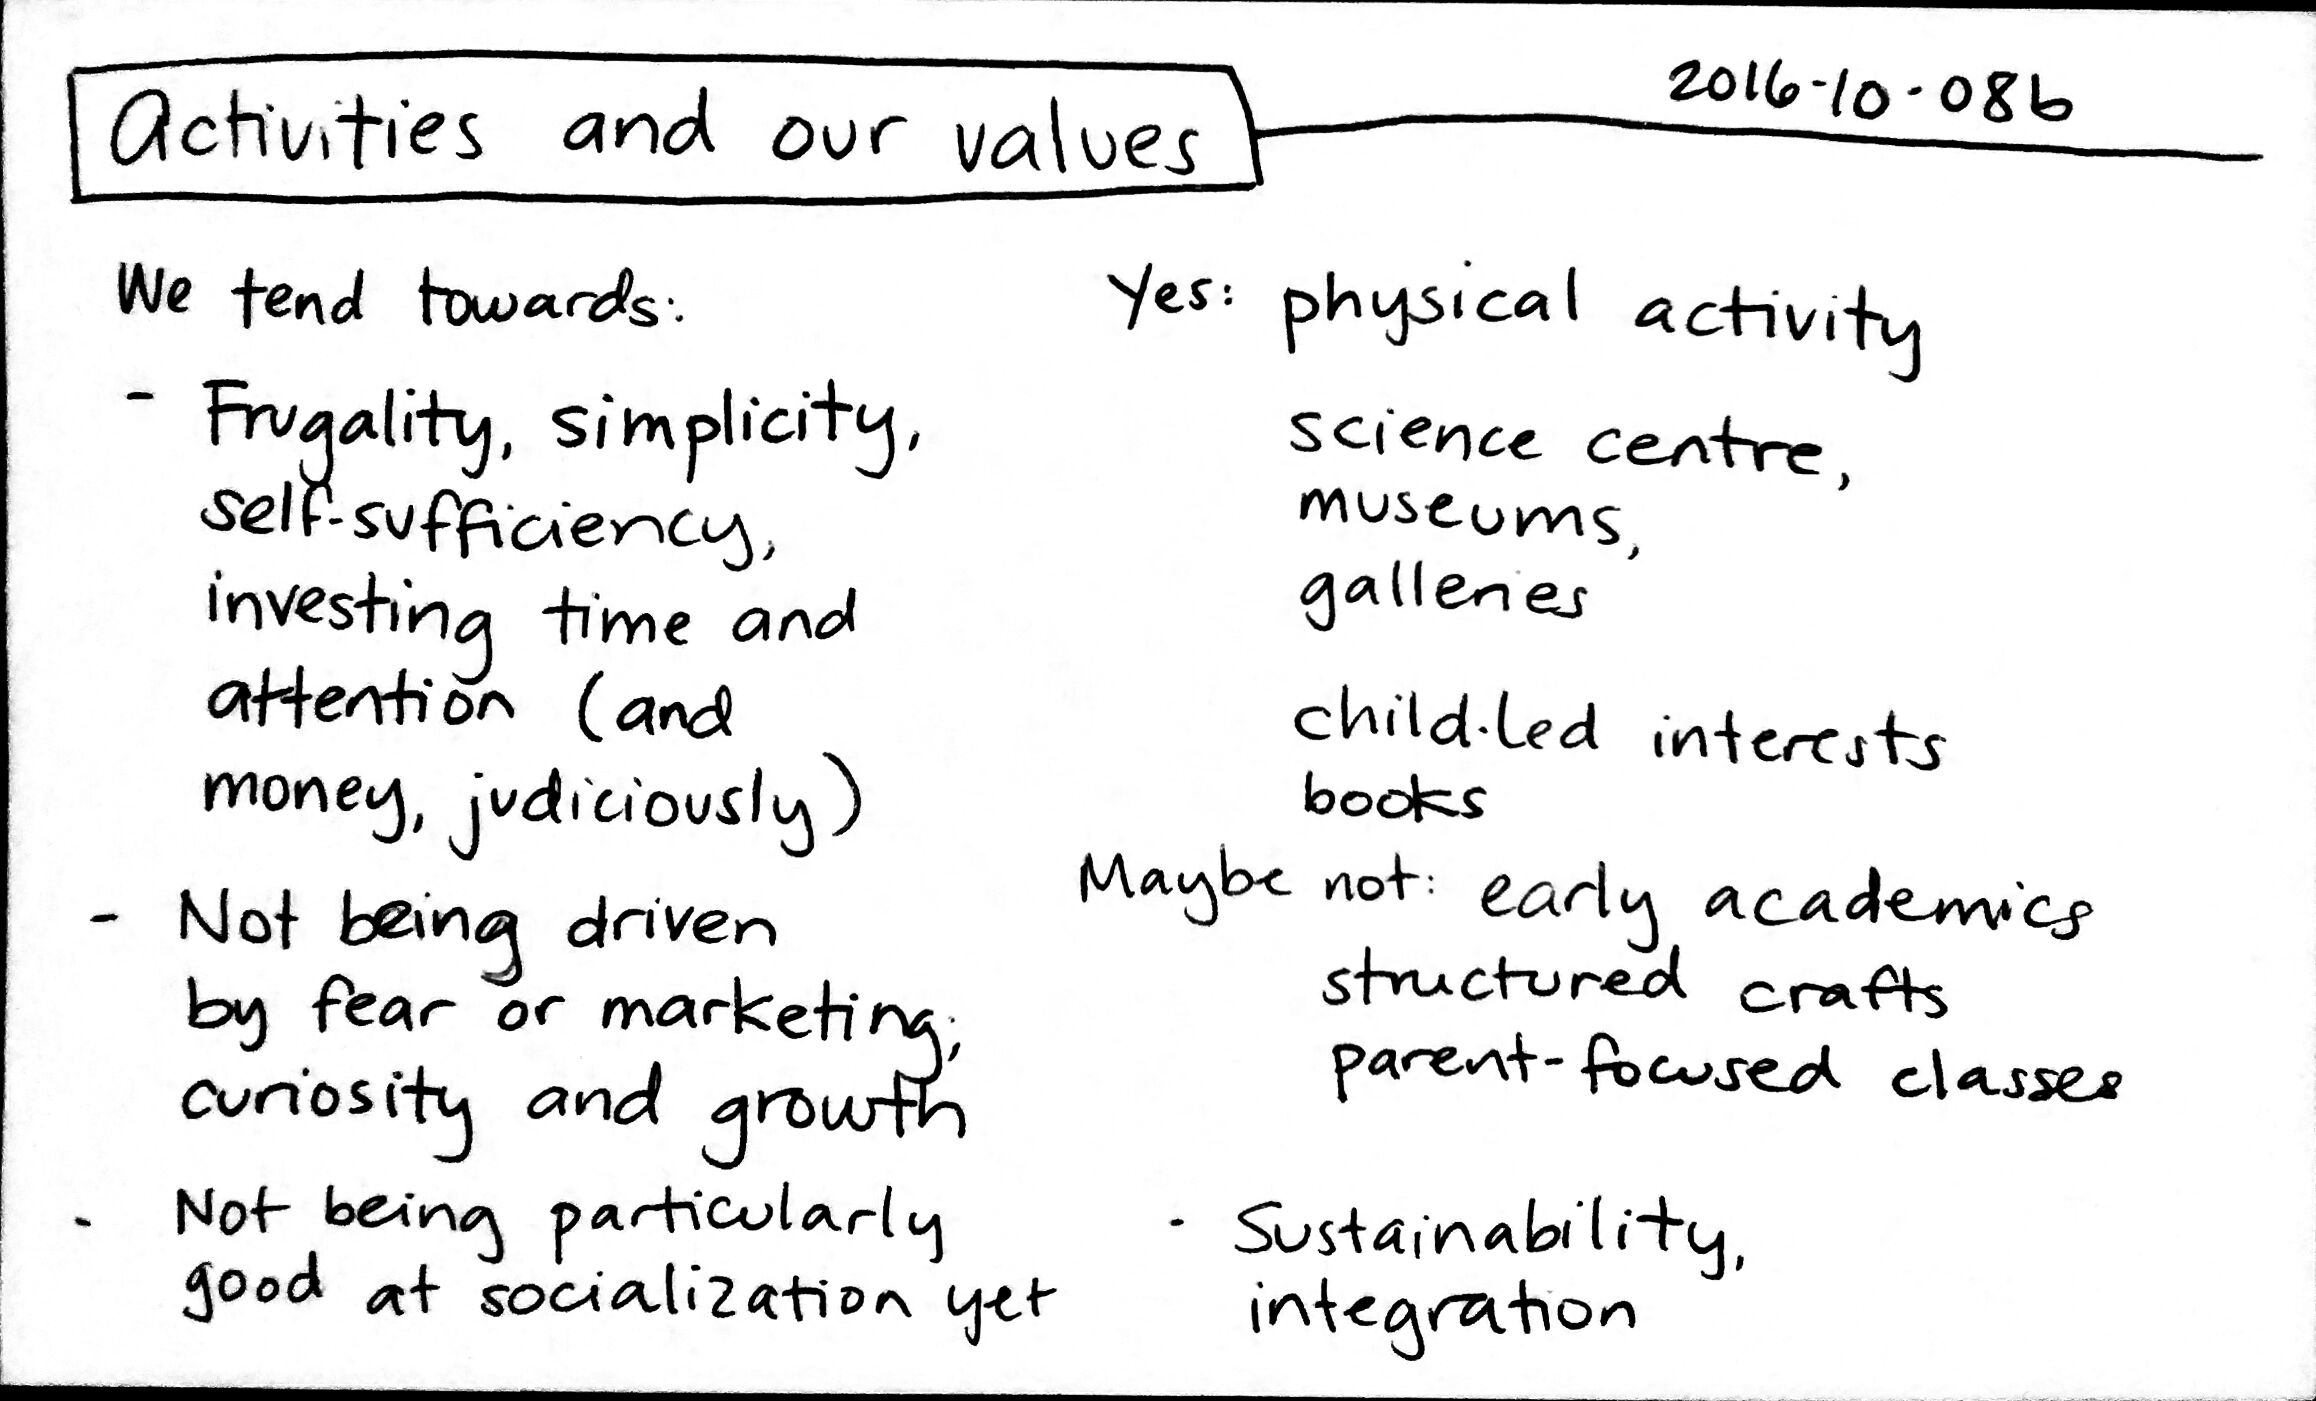 2016-10-08b Activities and our values #activities #early-learning #parenting #values #decision.jpg